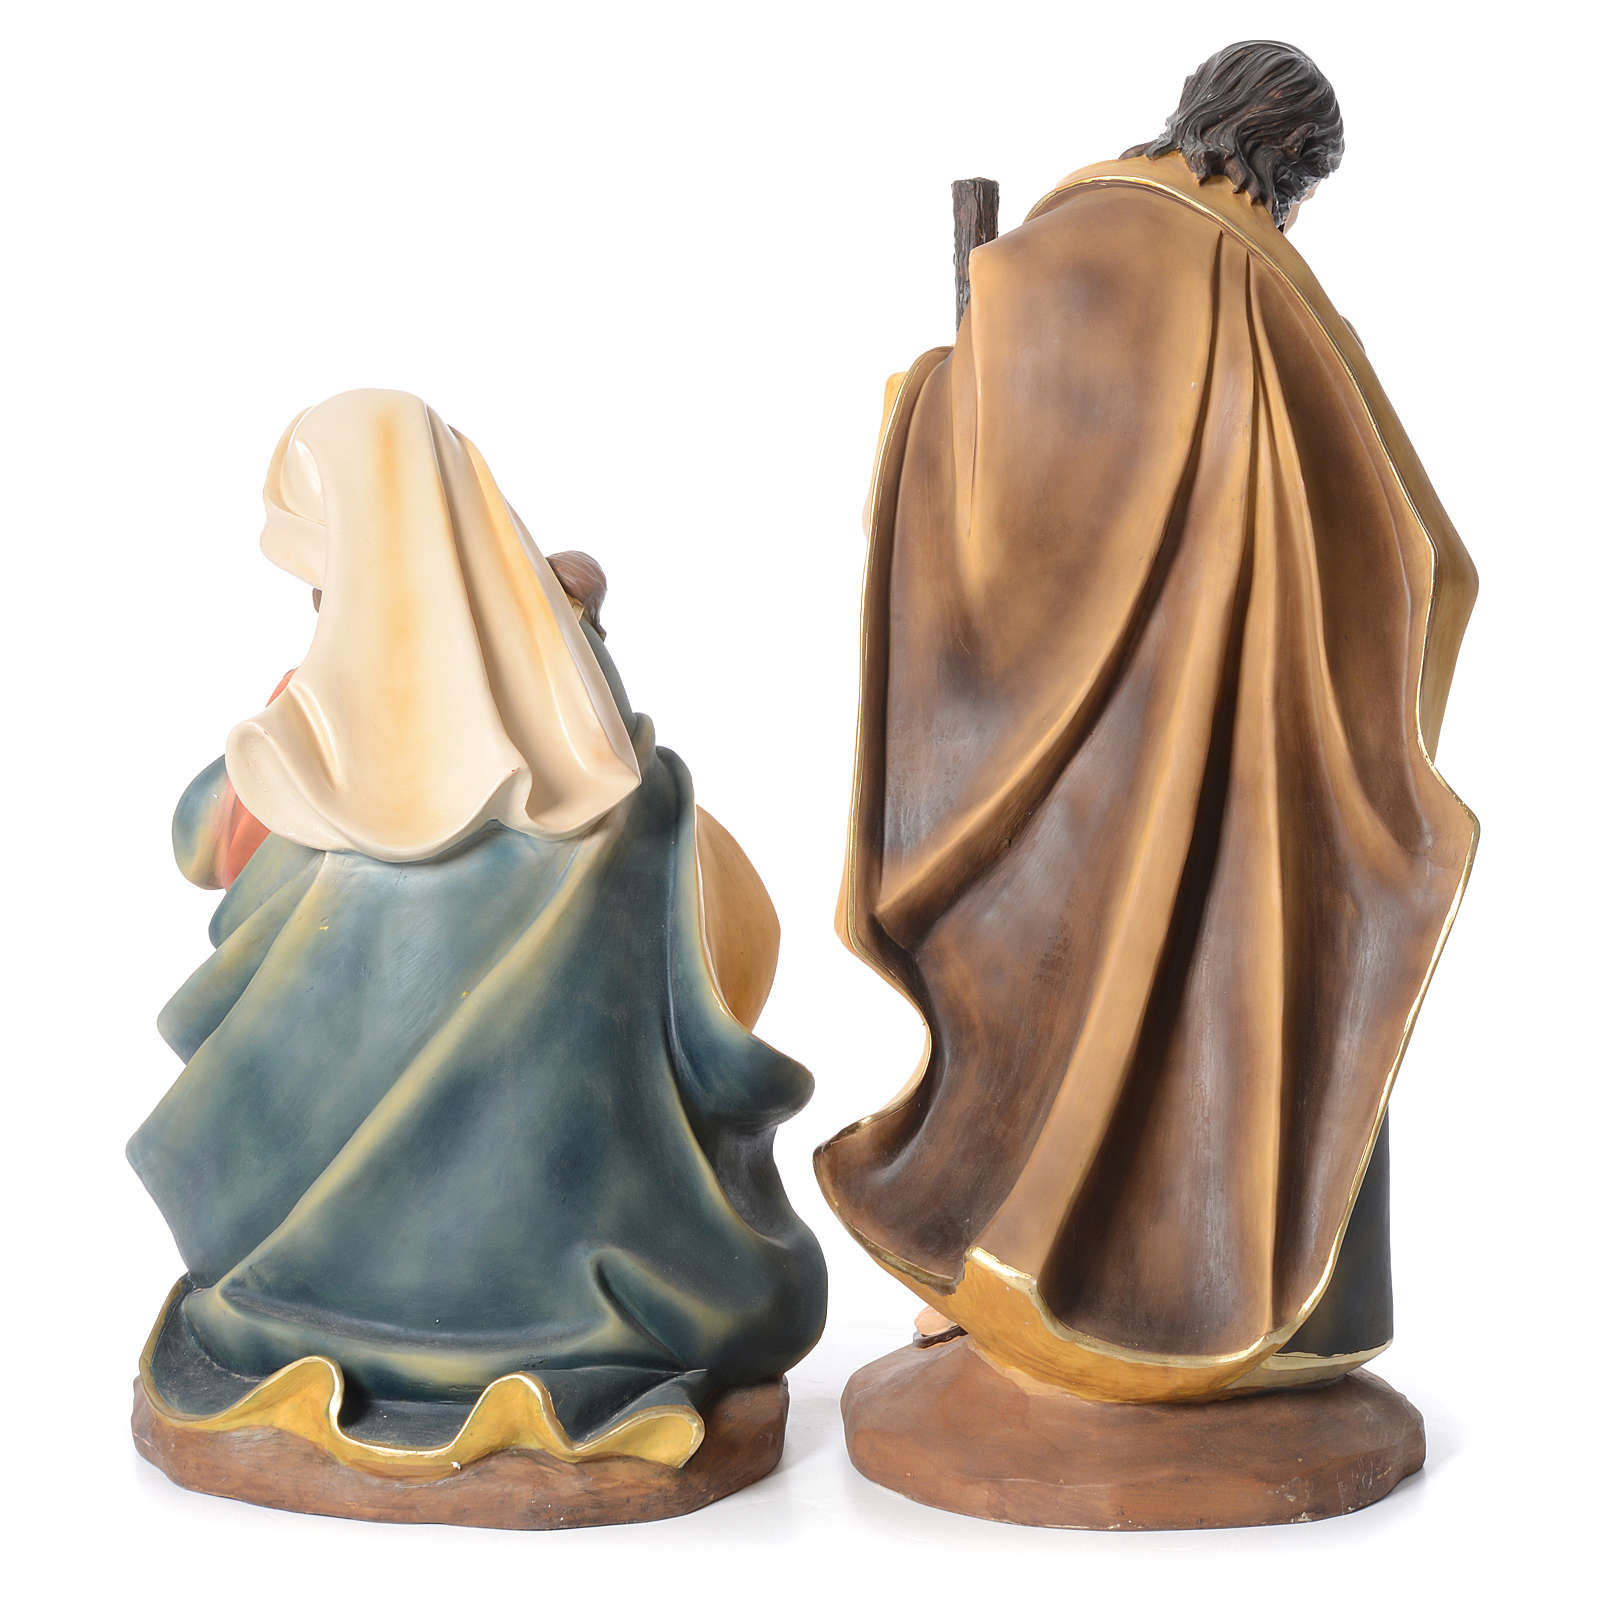 Nativity in resin with 3 figurines measuring 1 meter 3